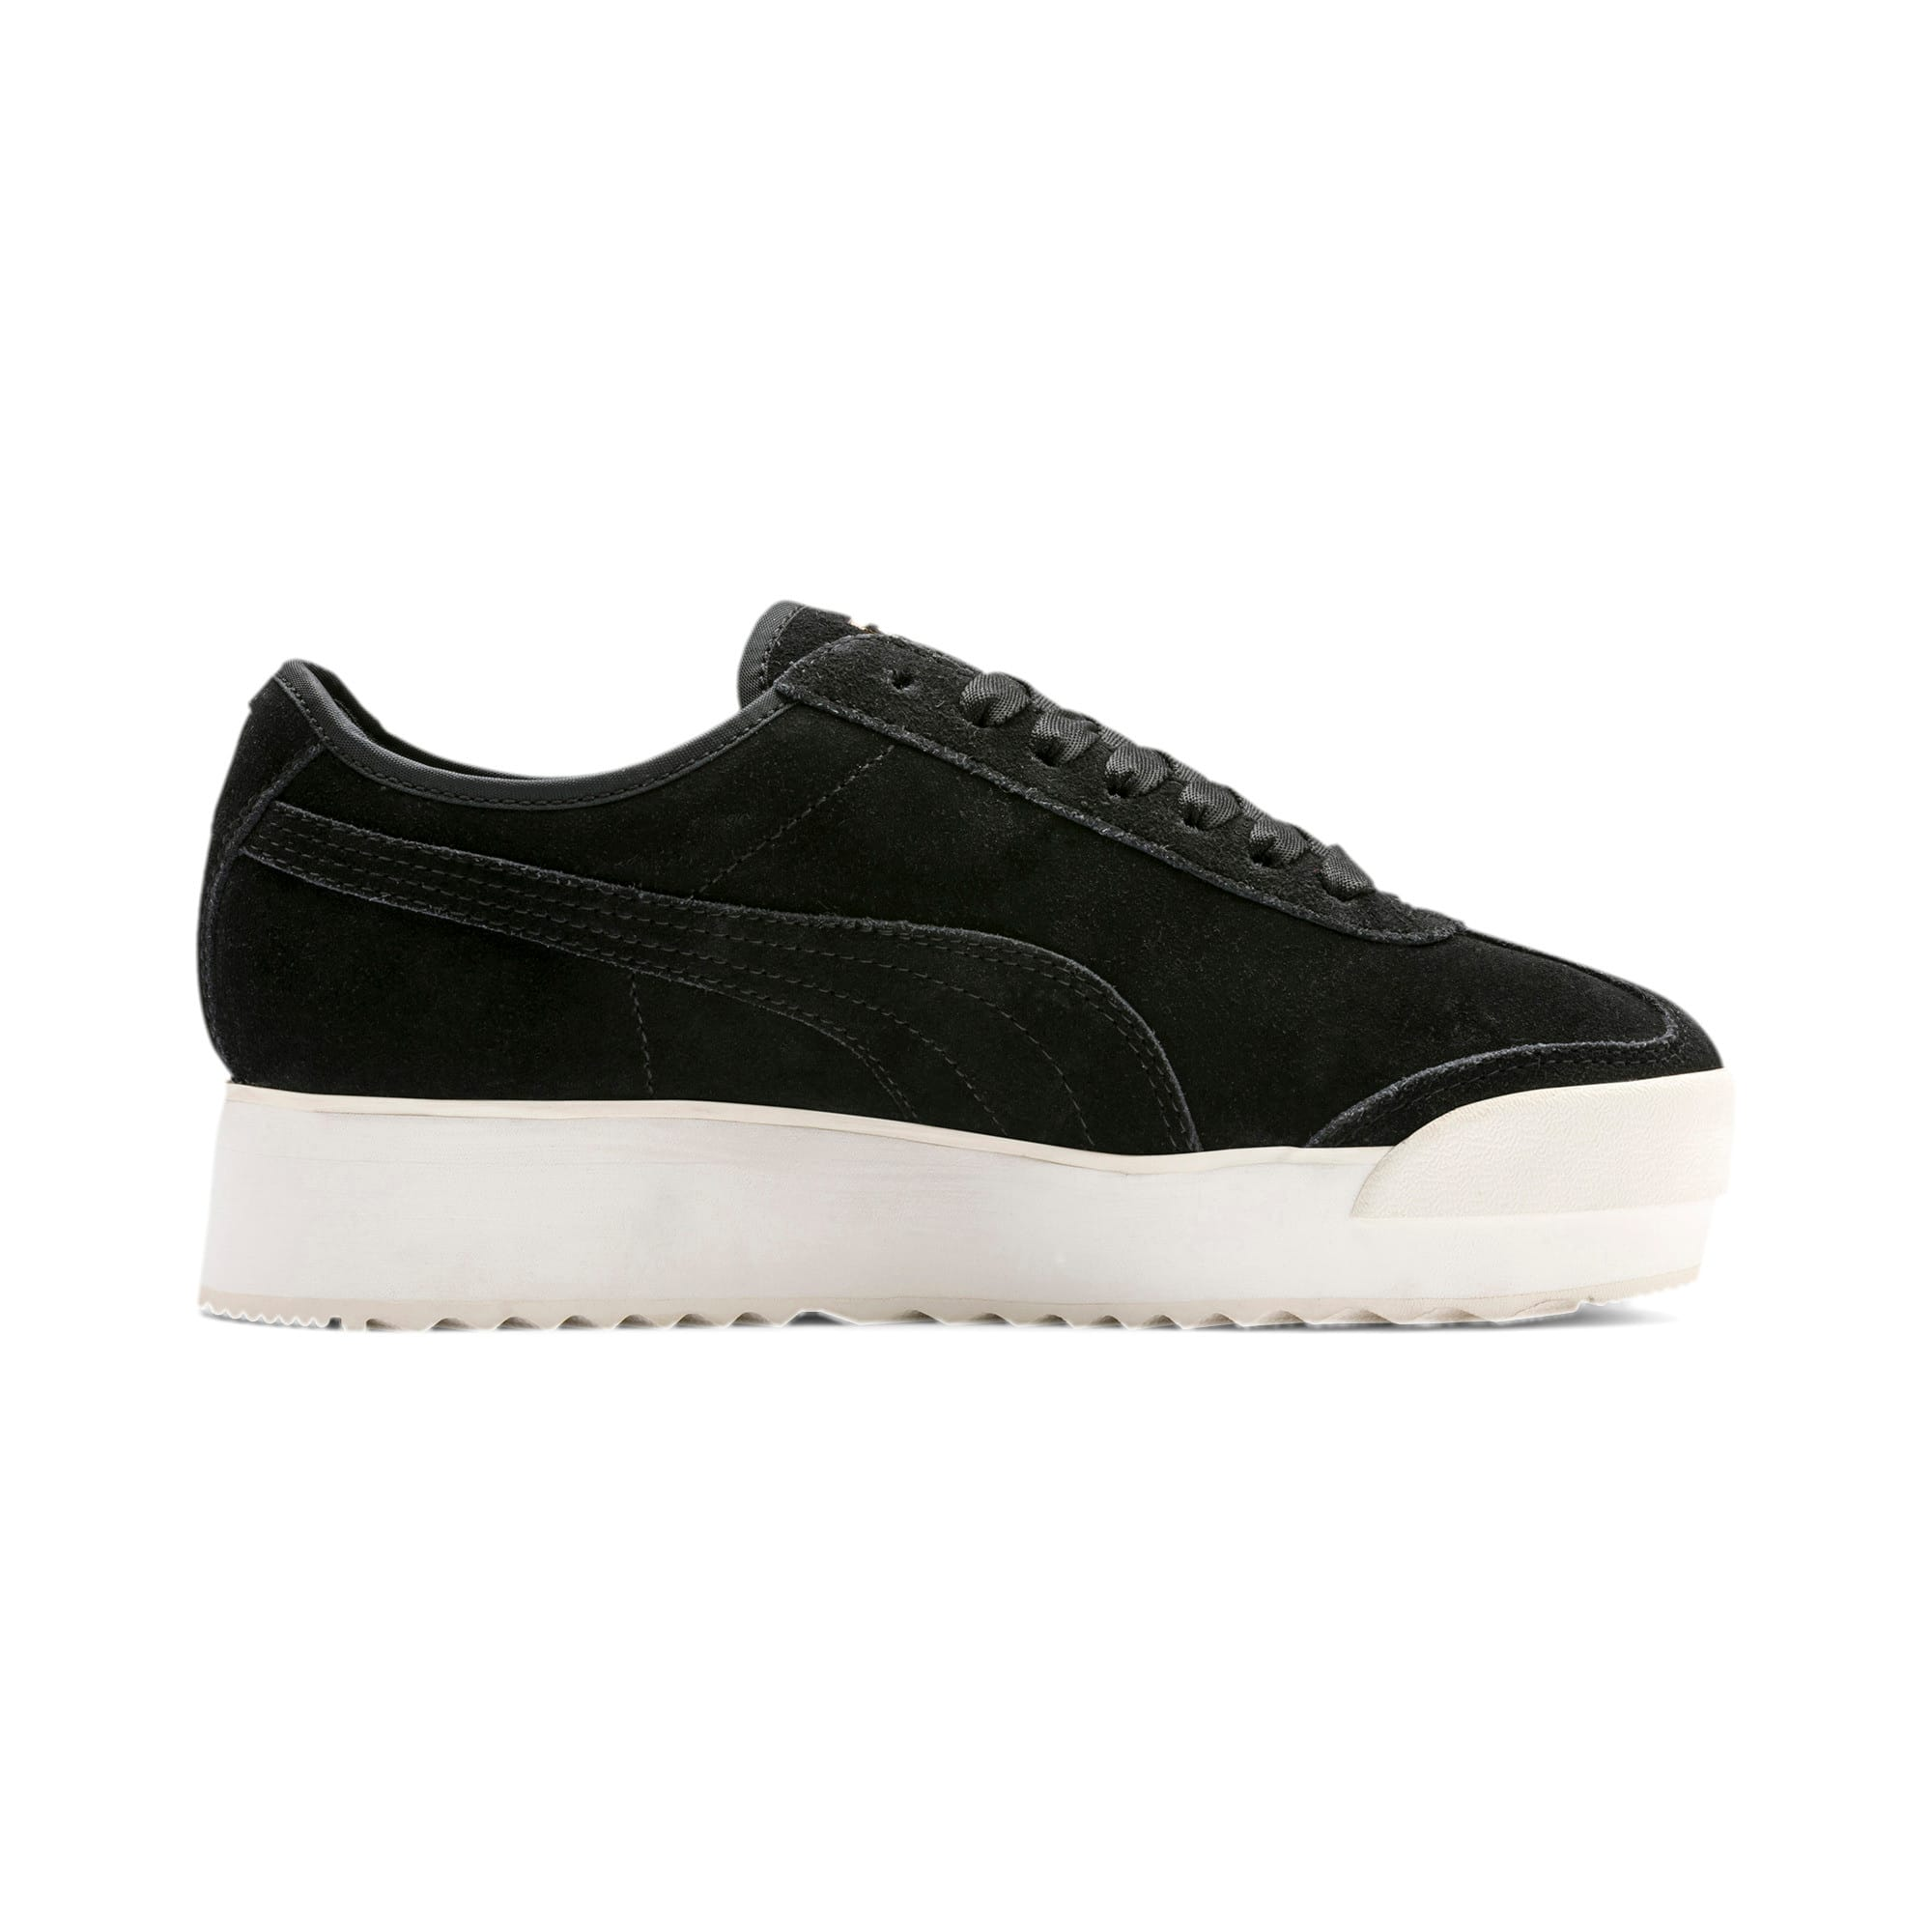 Thumbnail 6 of Roma Amor Suede Women's Sneakers, Puma Black-Puma Team Gold, medium